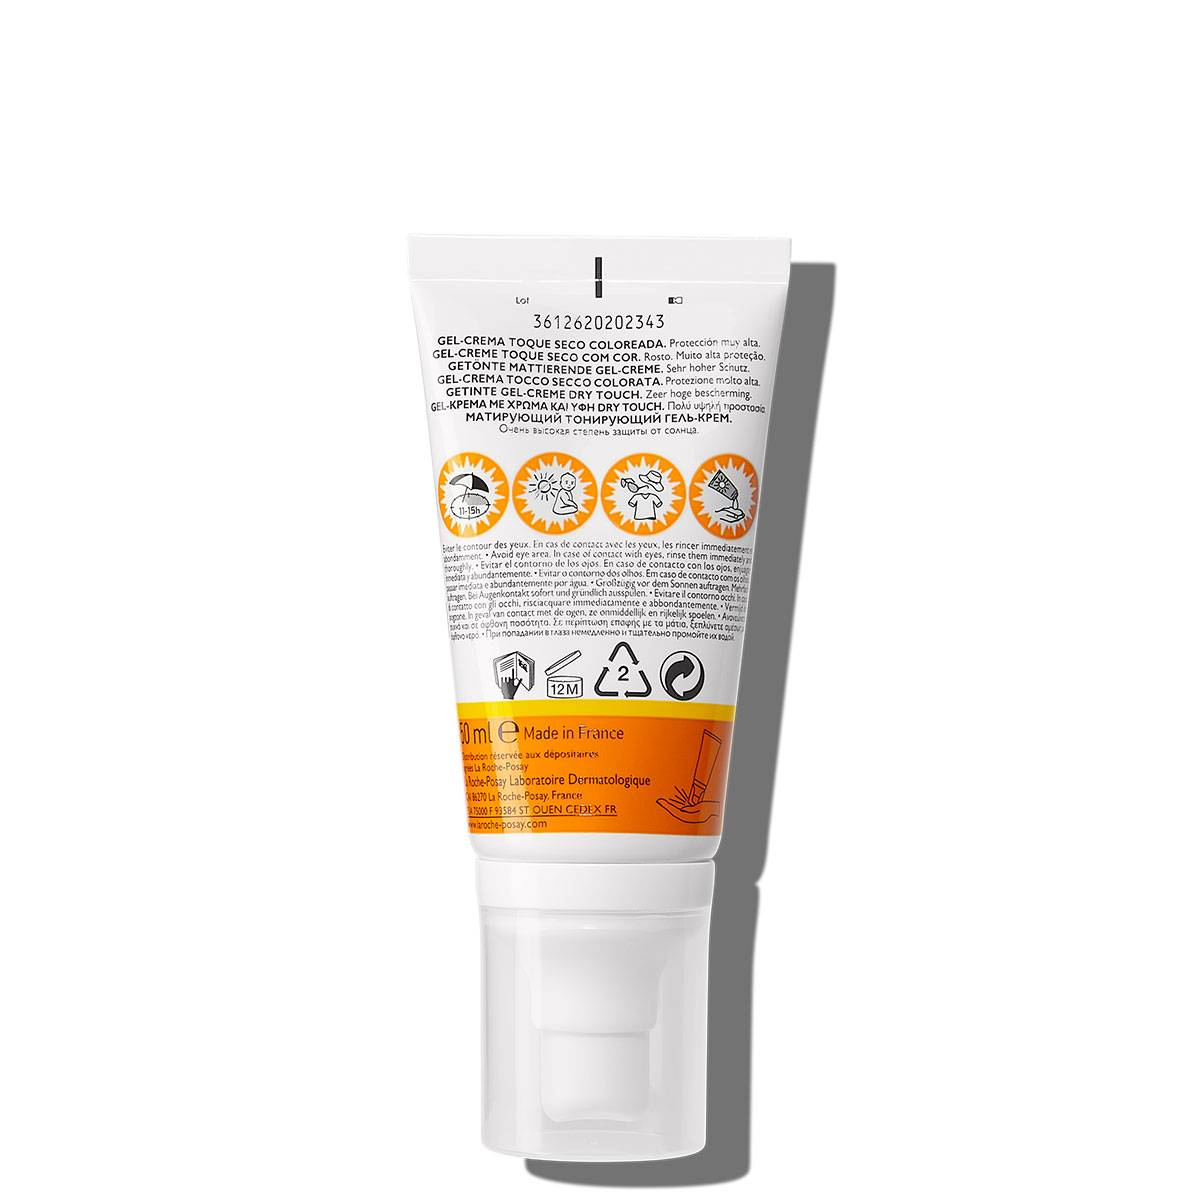 La Roche Posay ProductPage Sun Anthelios XL Tinted Dry Touch Cream Spf